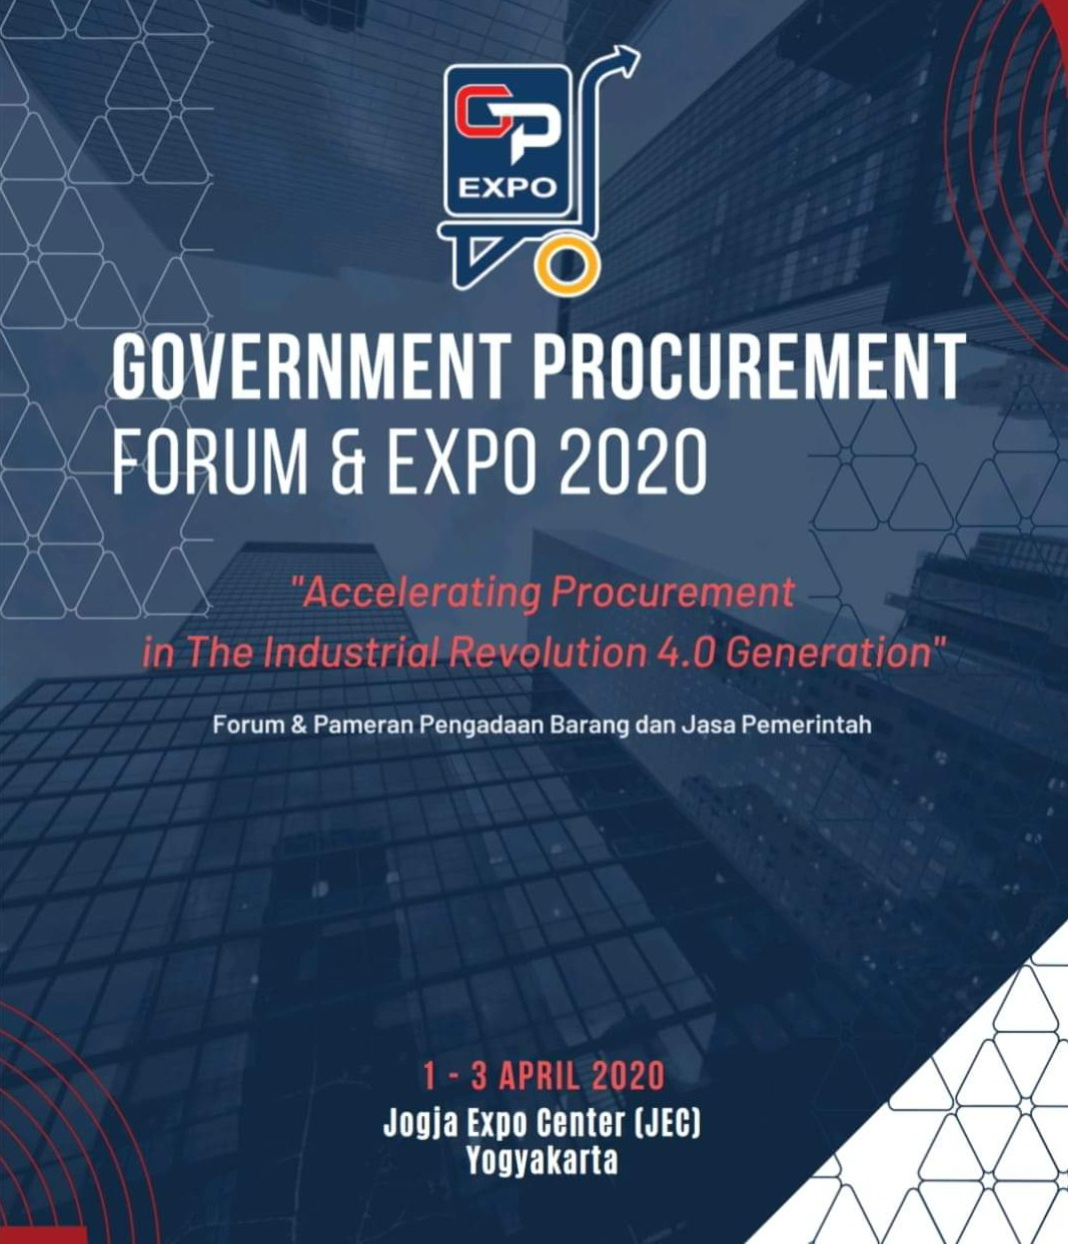 The 6th Government Procurement Forum & Expo (GPFE) 2020